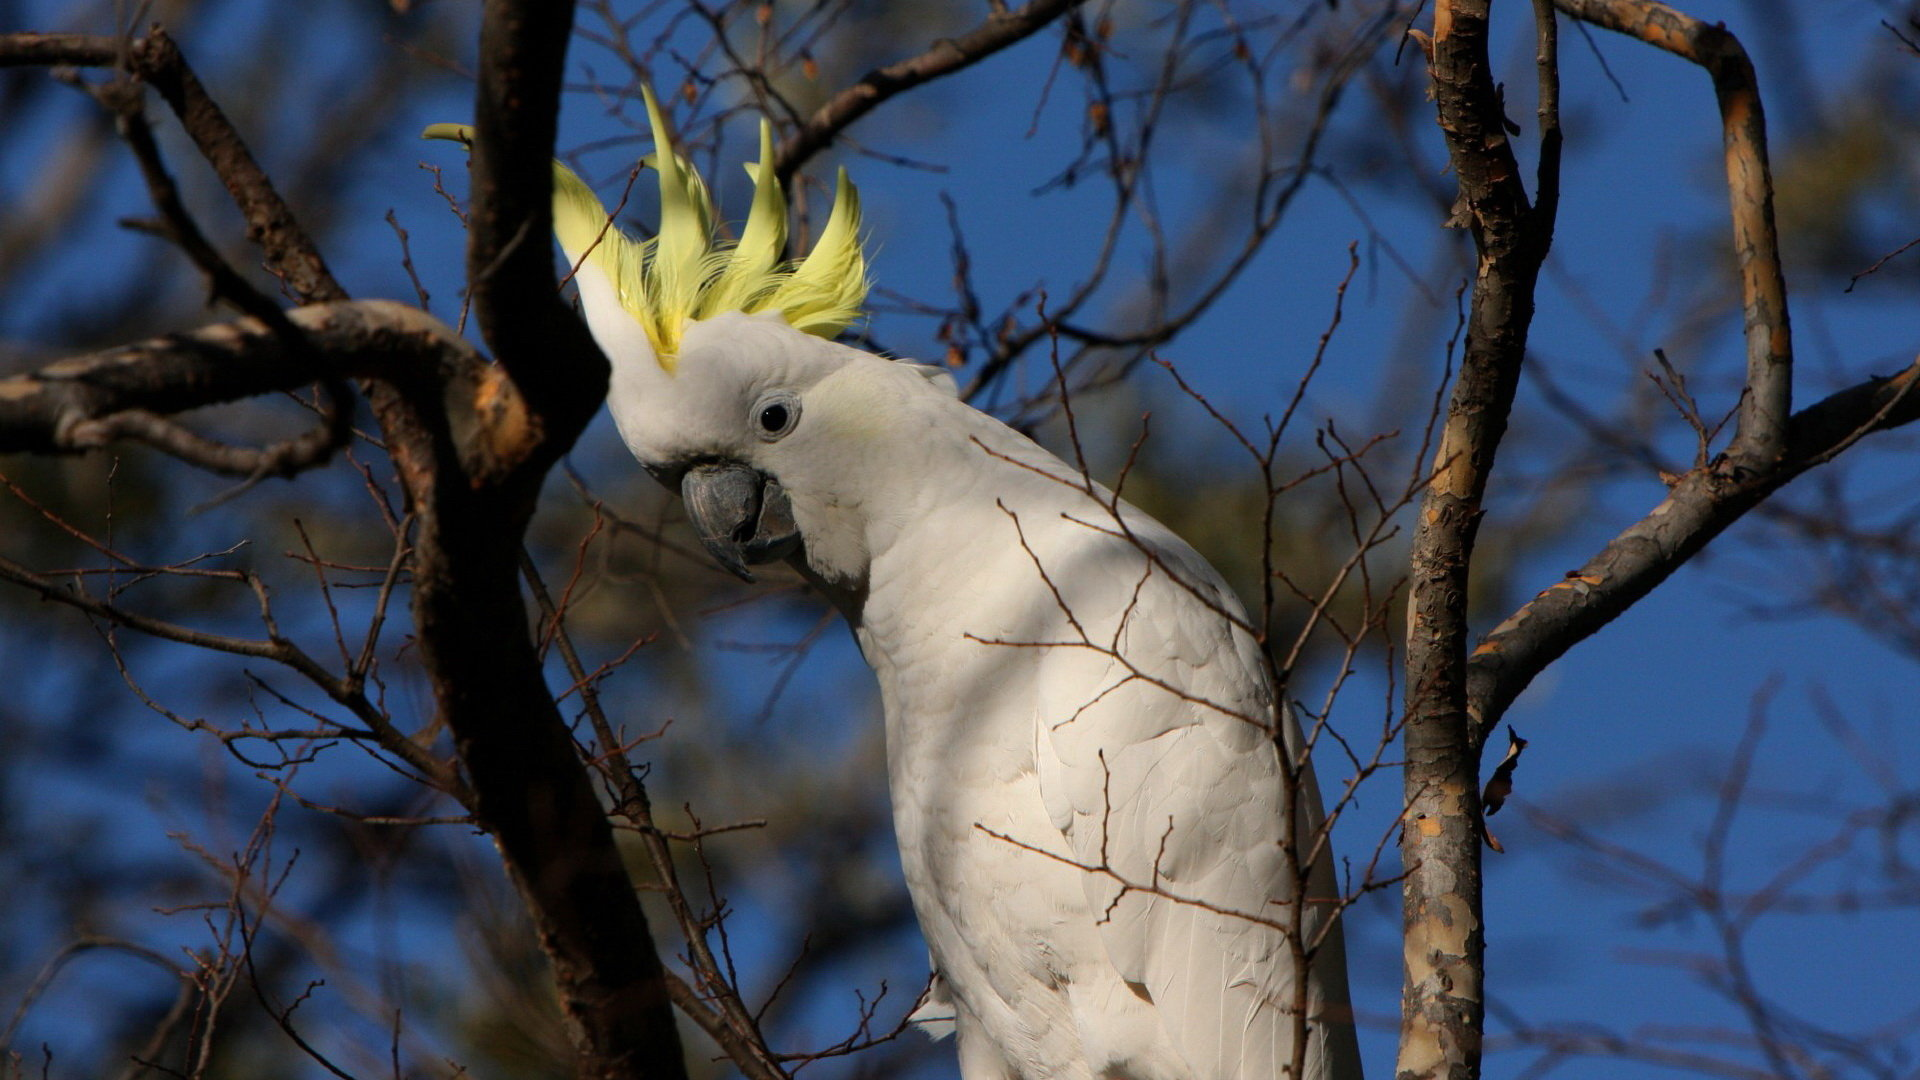 Download full hd 1080p Sulphur-crested Cockatoo PC background ID:130247 for free